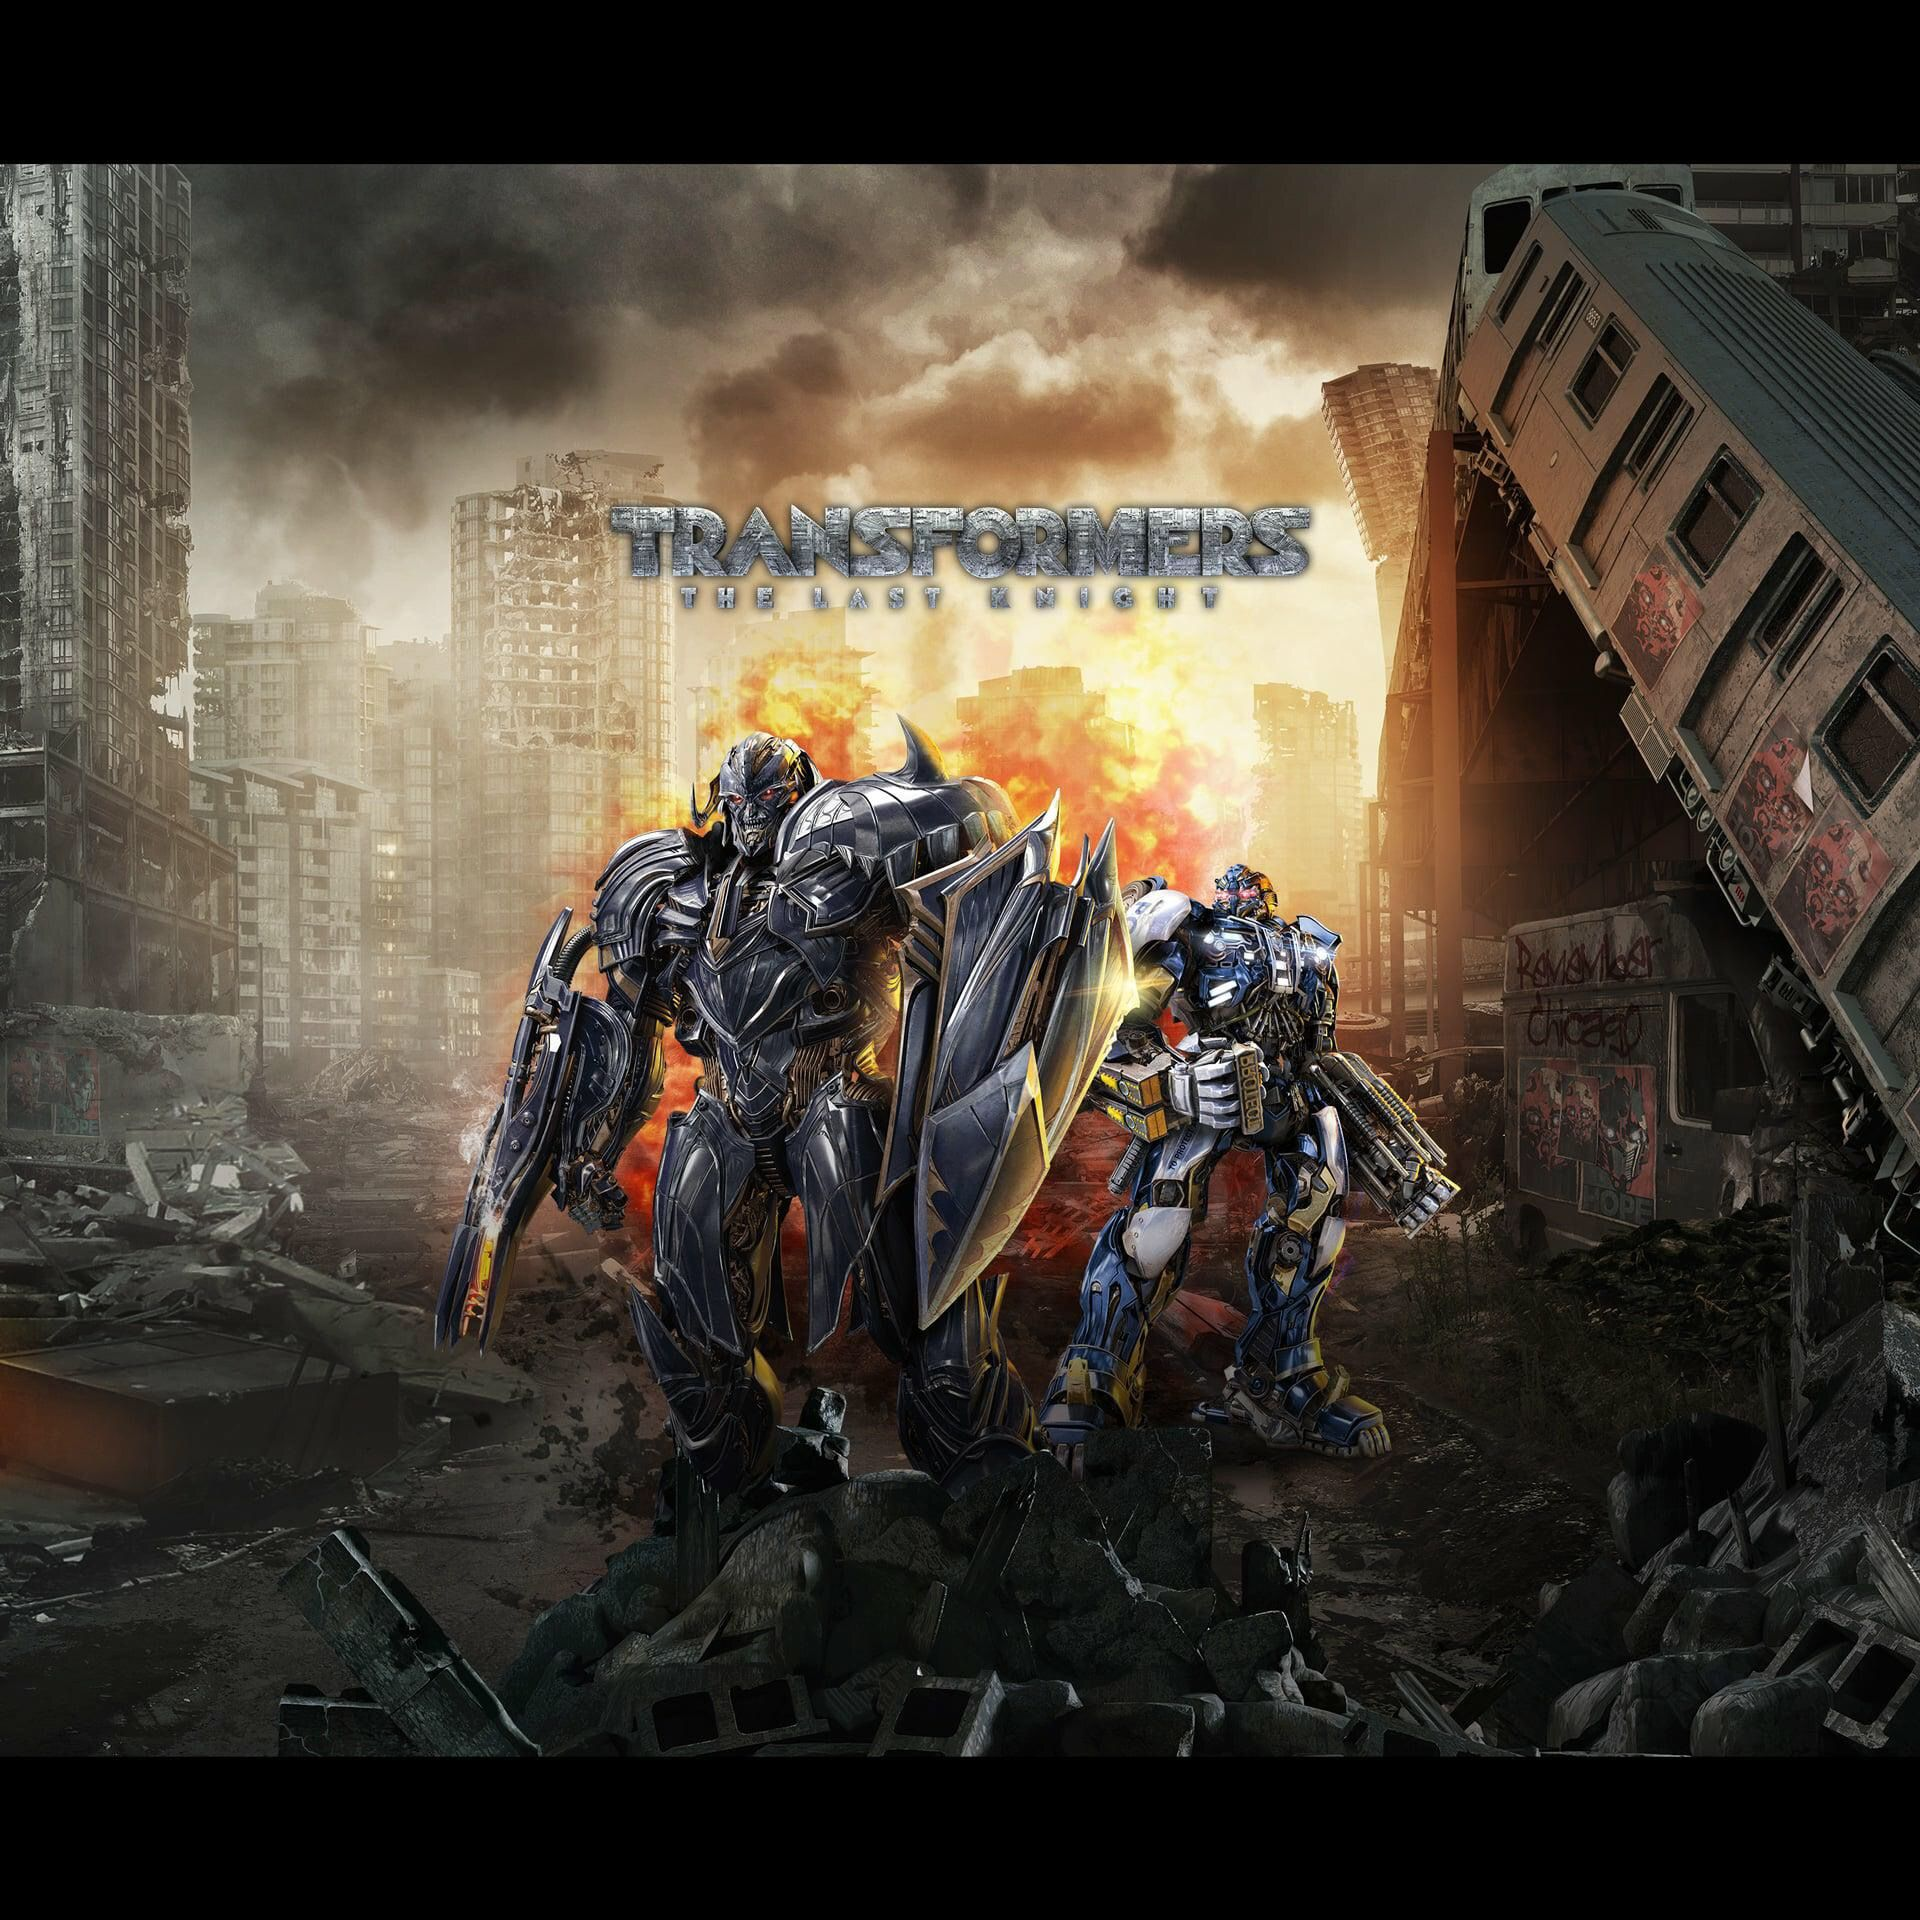 the official app for transformers: the last knight has just been